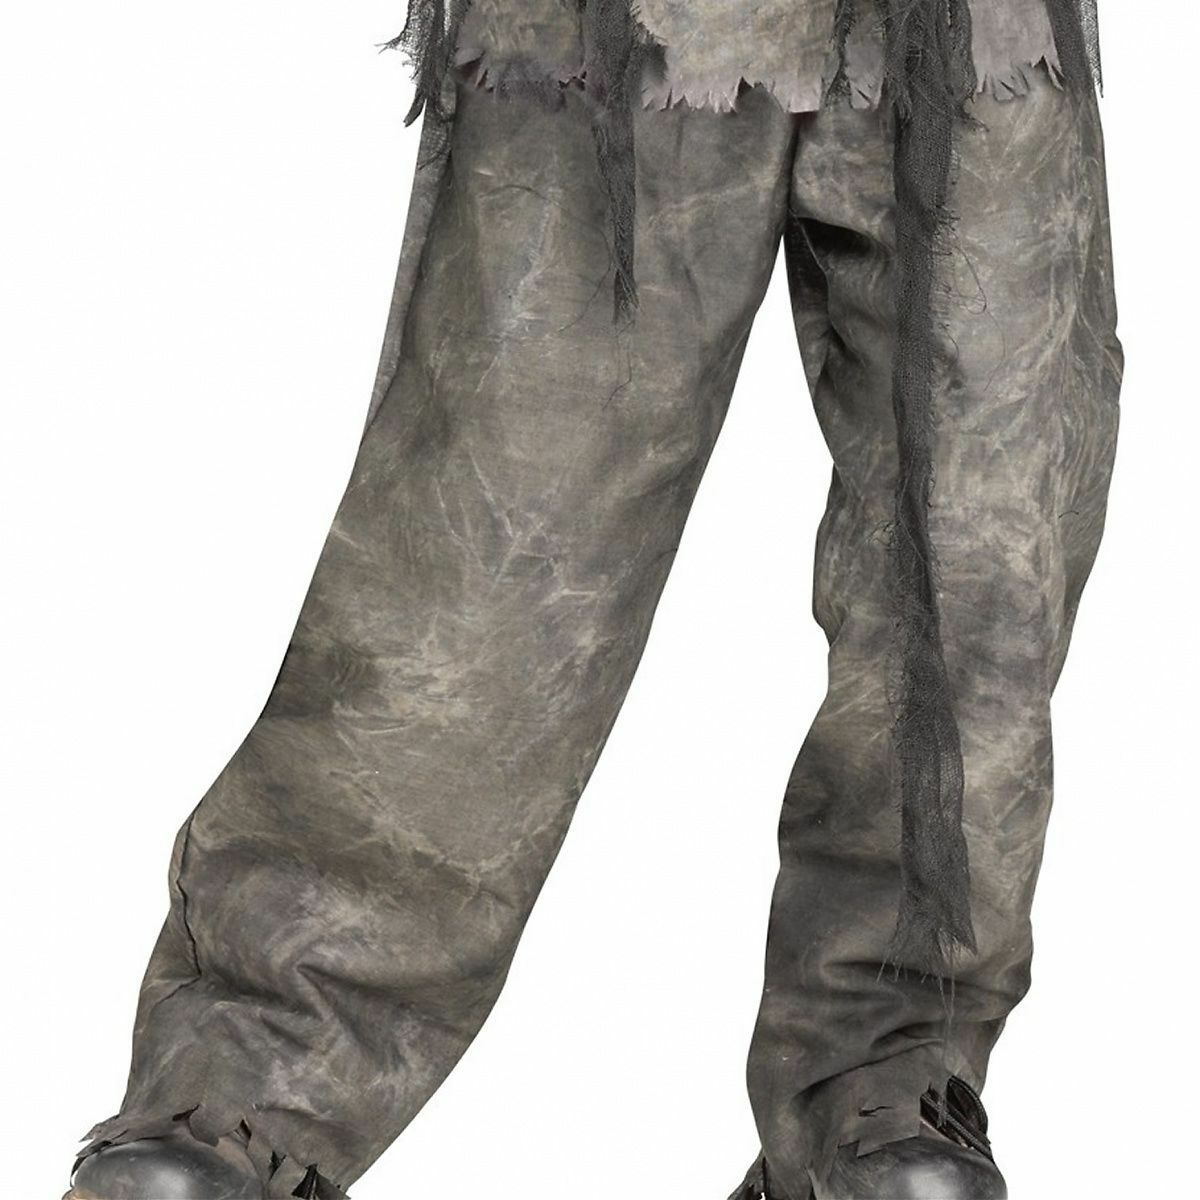 Burning Dead Zombie Costume for Kids size 8-10 & 12-14 New by Fun World 88490